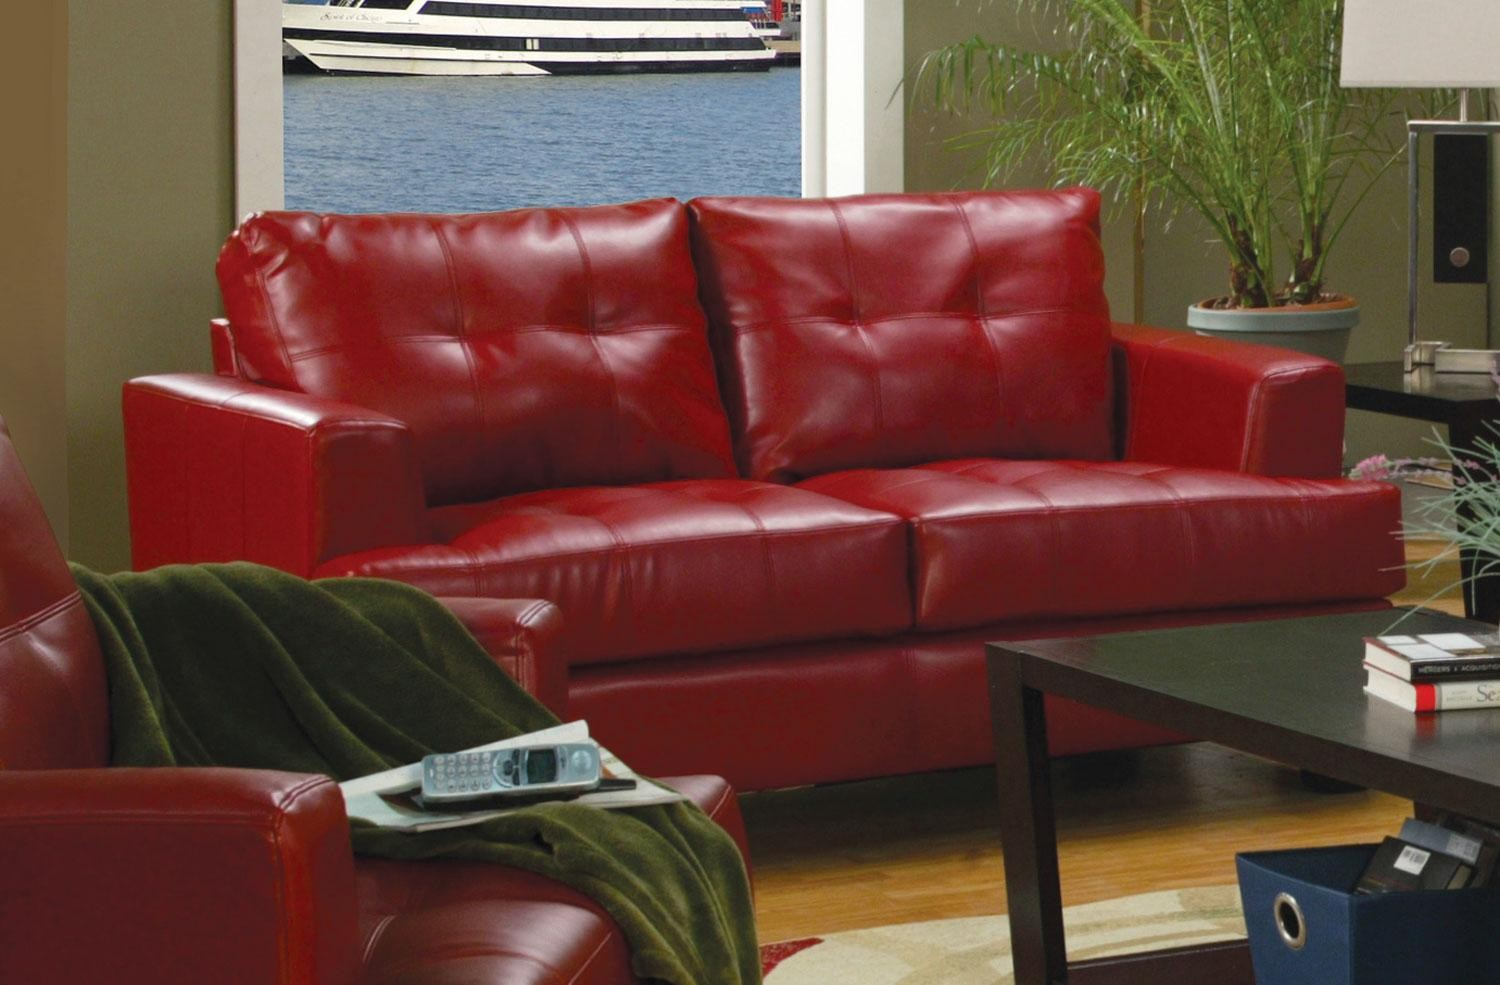 Samuel Red Leather Living Room Set 501831 From Coaster